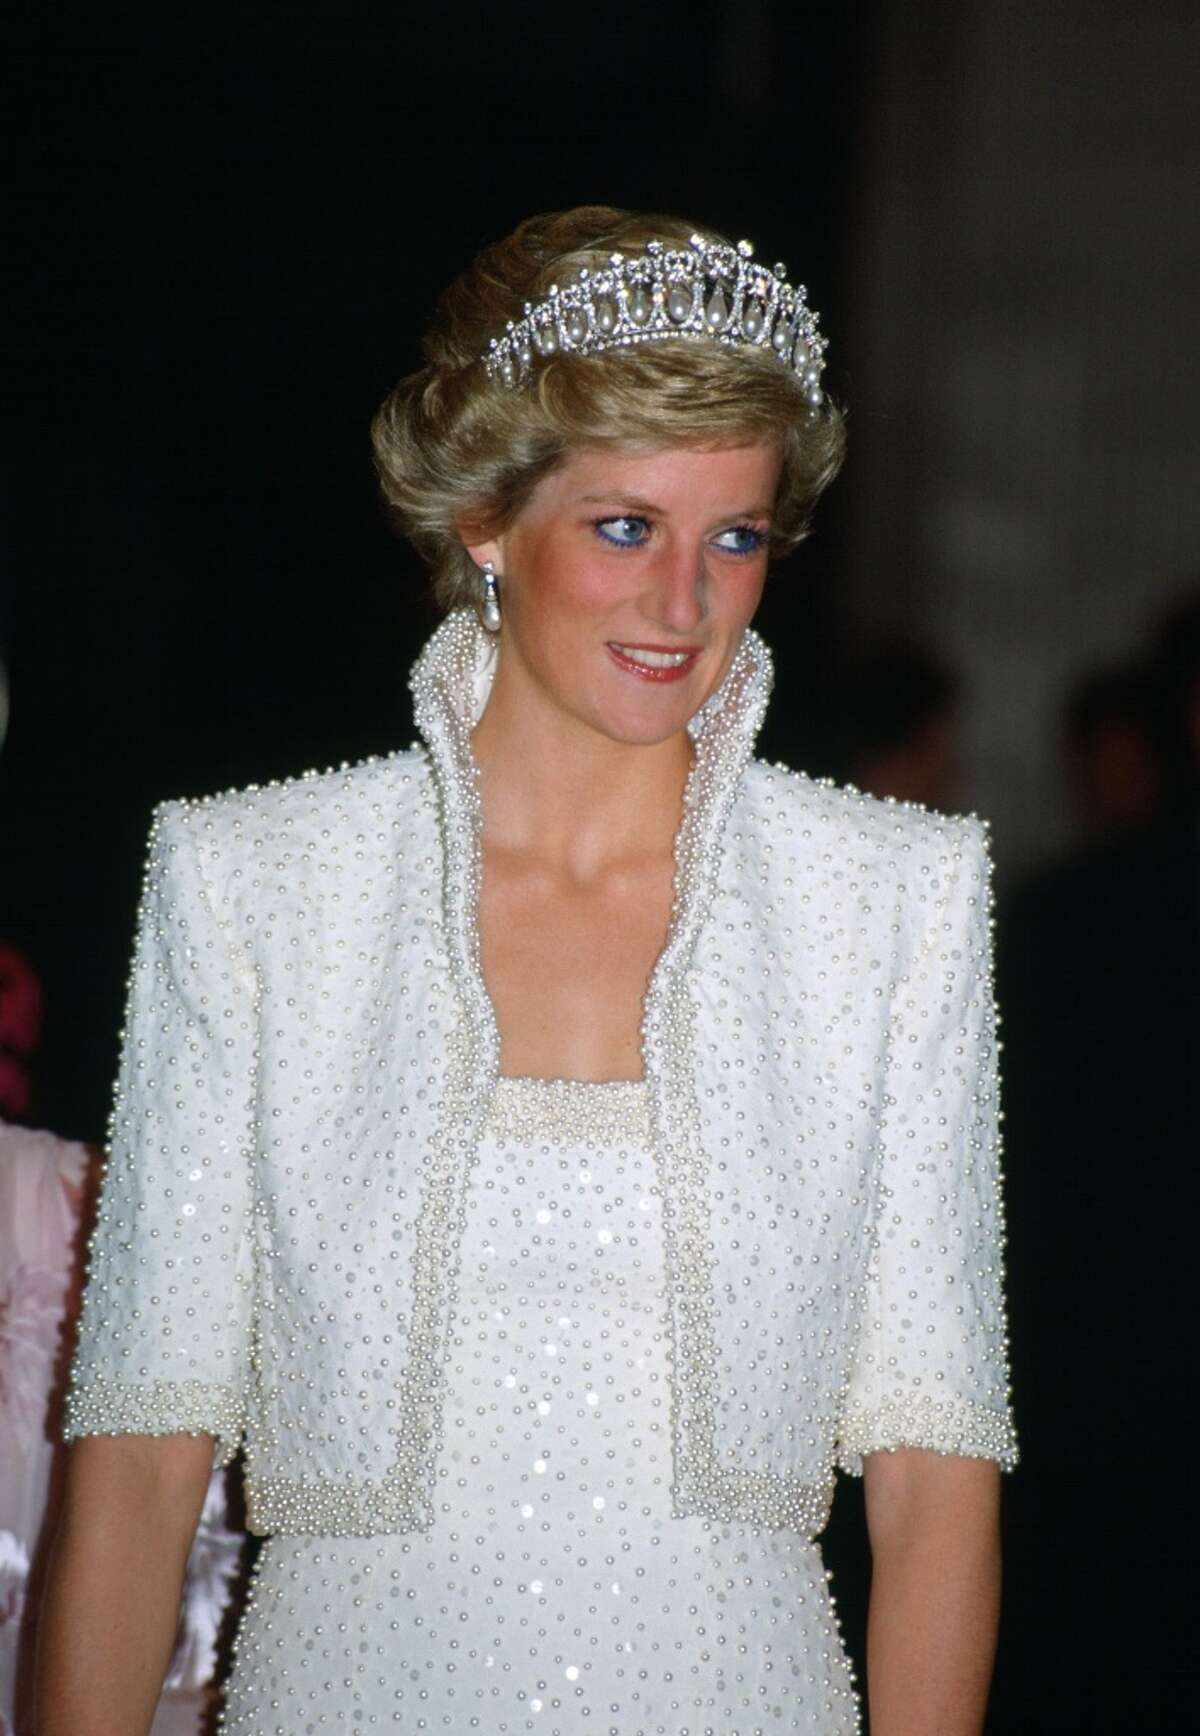 """Not 'Princess Diana' Though everybody and her uncle refers to her as """"Princess Diana,"""" that was never her title. (You have to be born a princess, like Princess Anne, to be """"Princess plus Name."""") While married, she was HRH the Princess of Wales and after her divorce she was Lady Diana, Princess of Wales."""